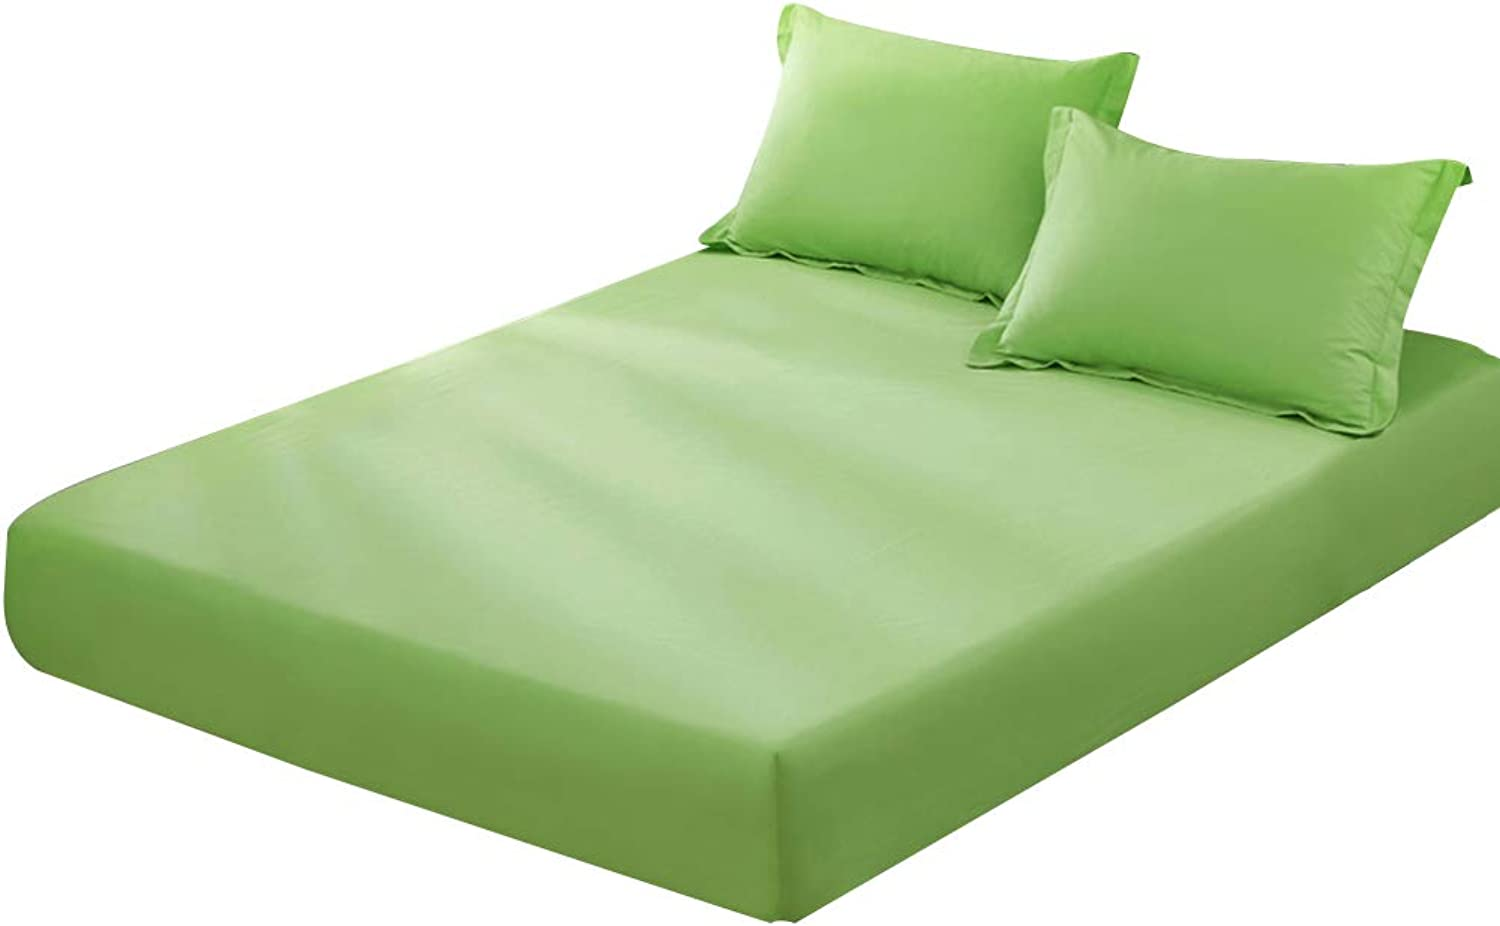 ZHAOHUI Mattress Predector Cotton Non-Slip Breathable Hygroscopic Environmental Predection Soft Skin-Friendly, 4 Packages, 5 colors, 2 Sizes (color   Green-2pcs, Size   Full)